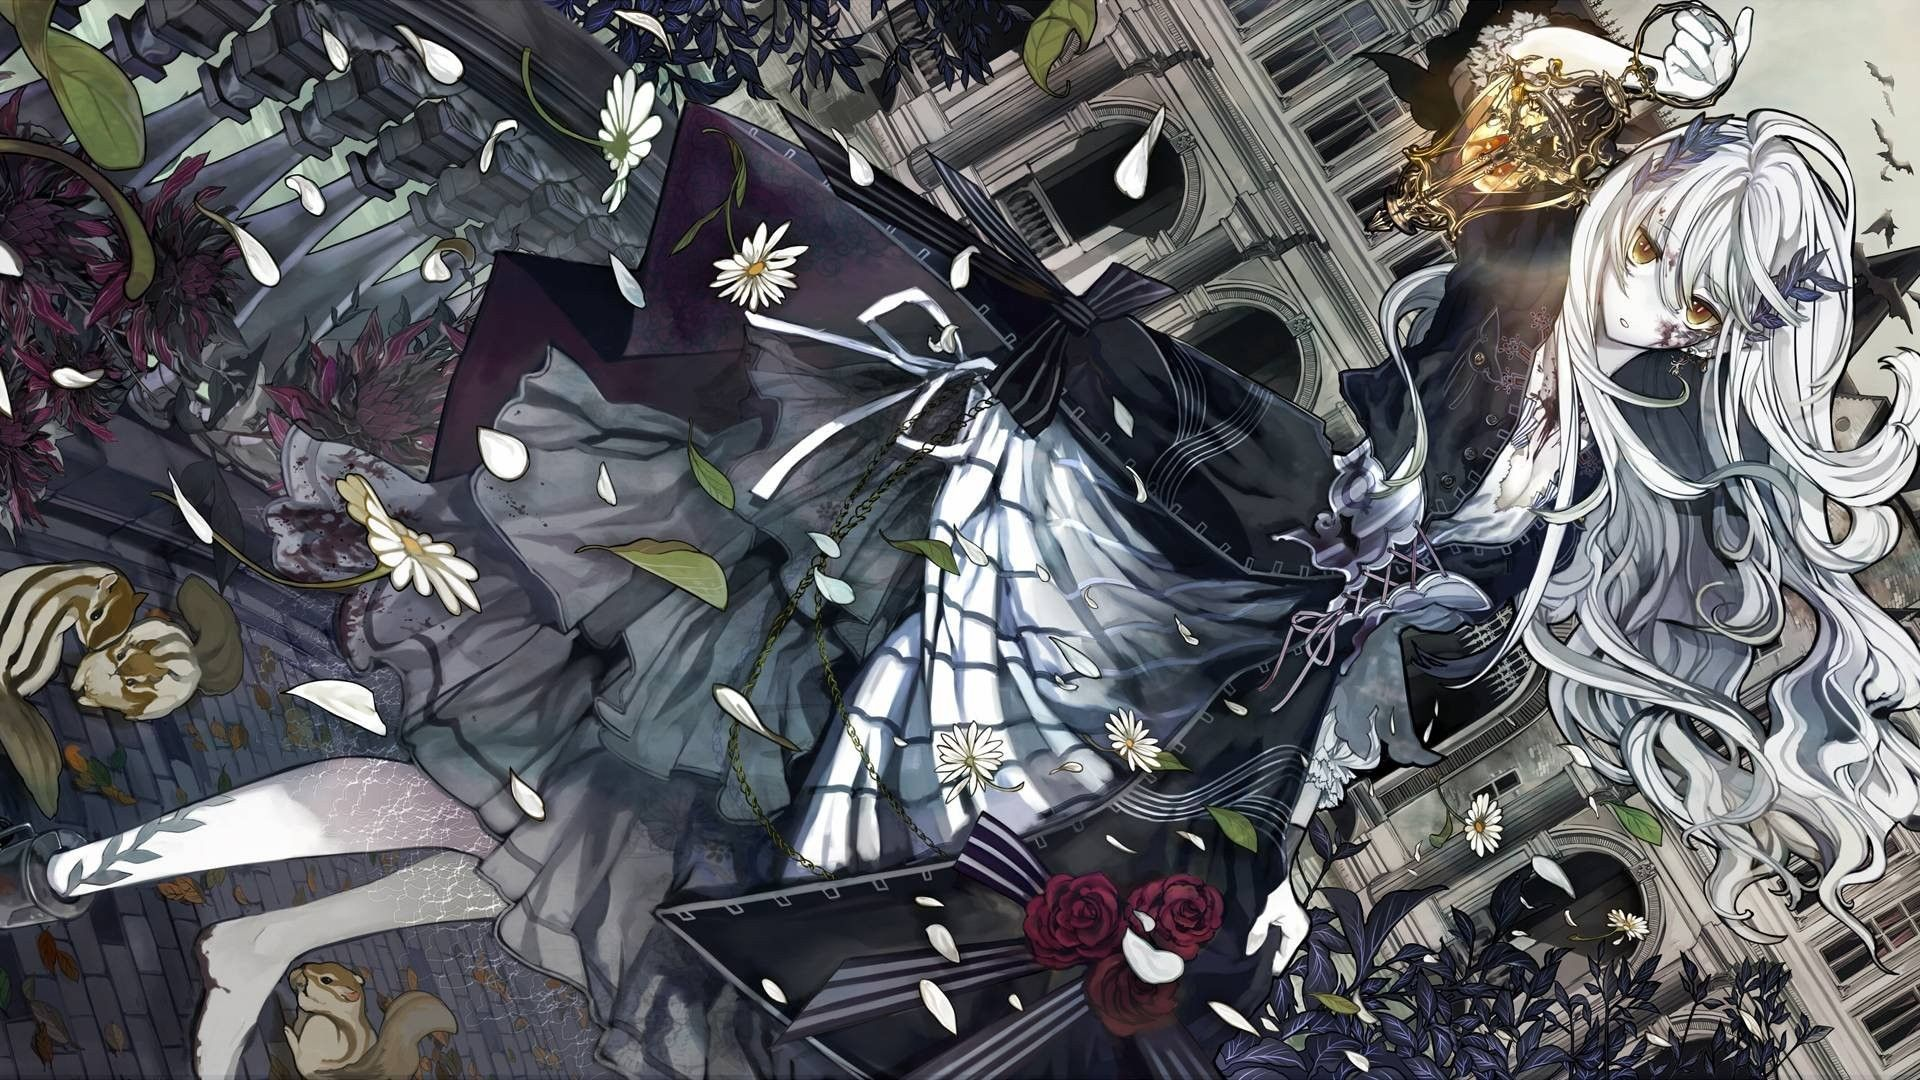 Gothic Anime Desktop Wallpaper Gothic Anime Hd Background Cool